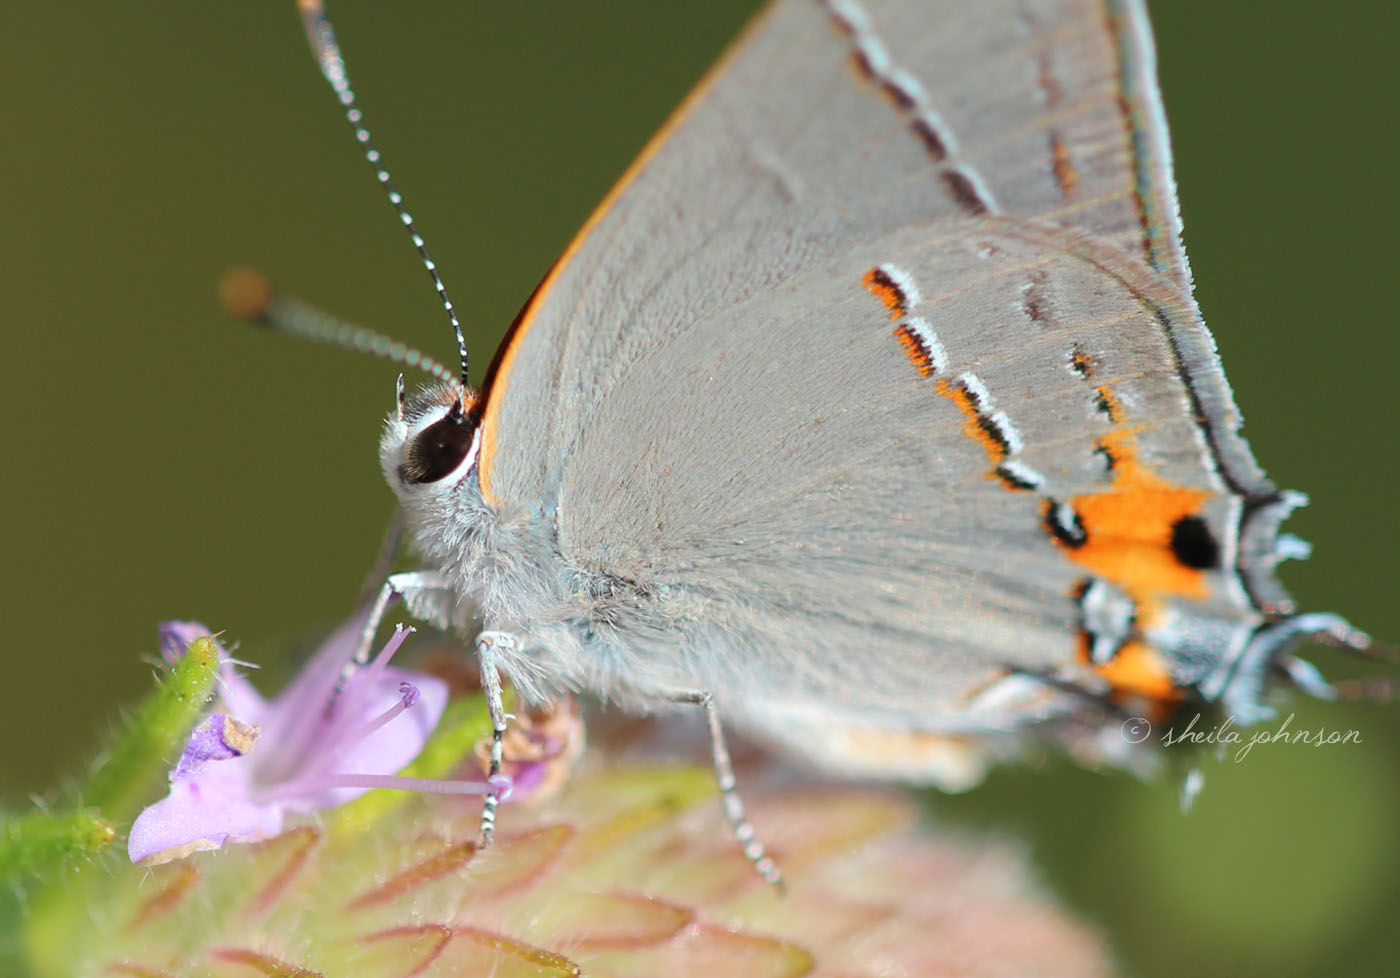 In The Heat Of The Florida Summer At Allapattah Flats In Palm City, Florida, You Can Find The Bartram's Scrub Hairstreak Butterfly Flitting About Among The Wildflowers, As Well As Many Other Butterfly Species. There Are Few Ways As Fabulous As This To Play Hookie!